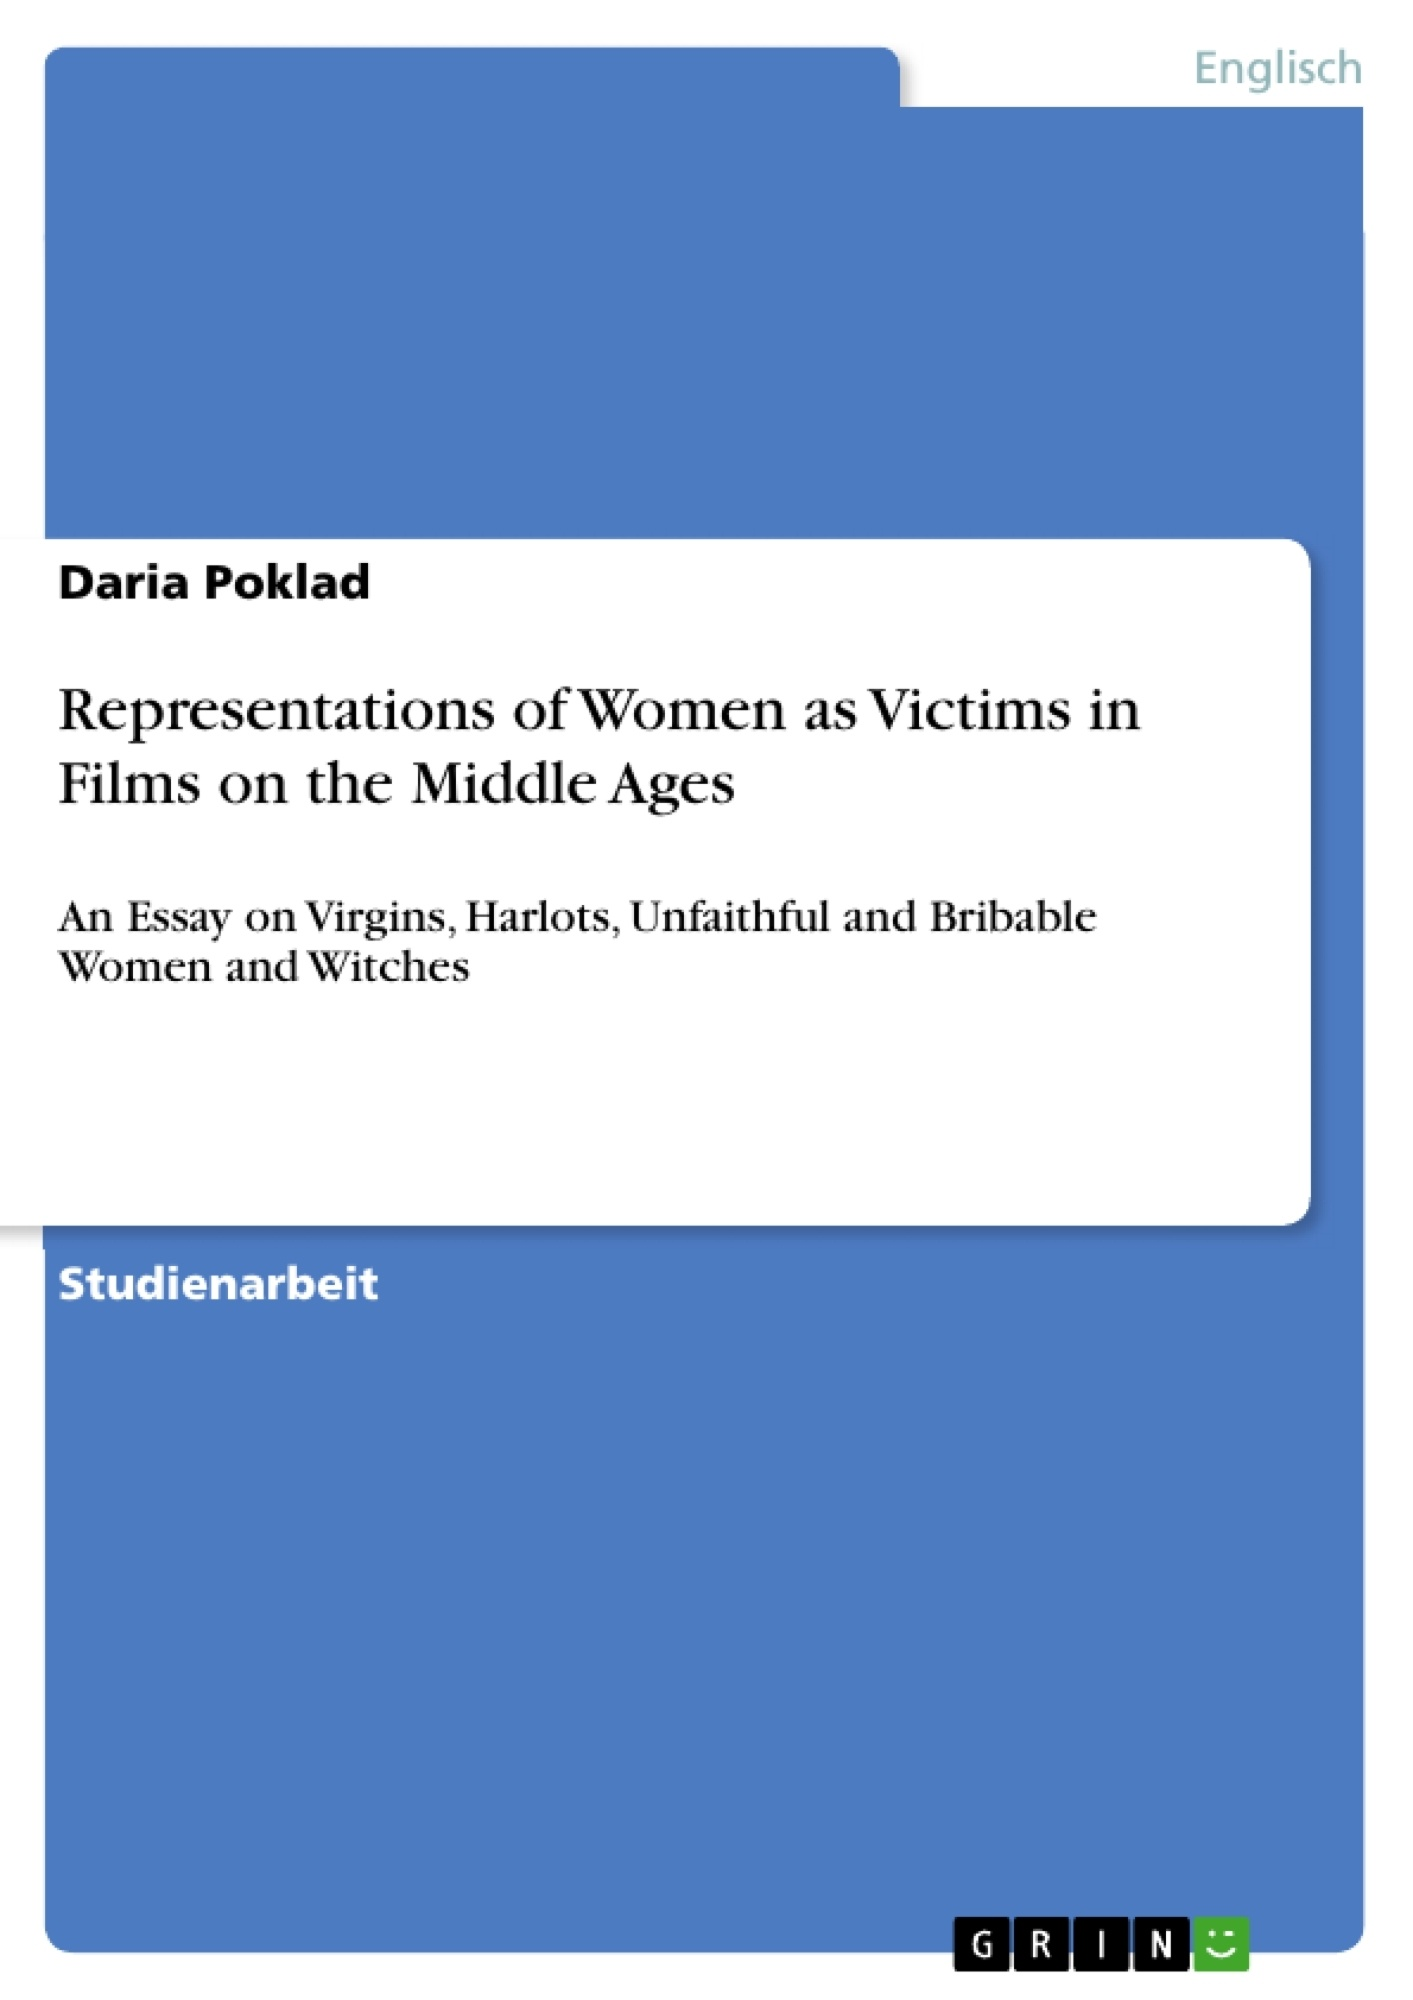 how are women portrayed as victims english literature essay Women in literature — a literary overview  elaine showalter shows how women's literature has evolved, starting from the victorian period to modern writing.